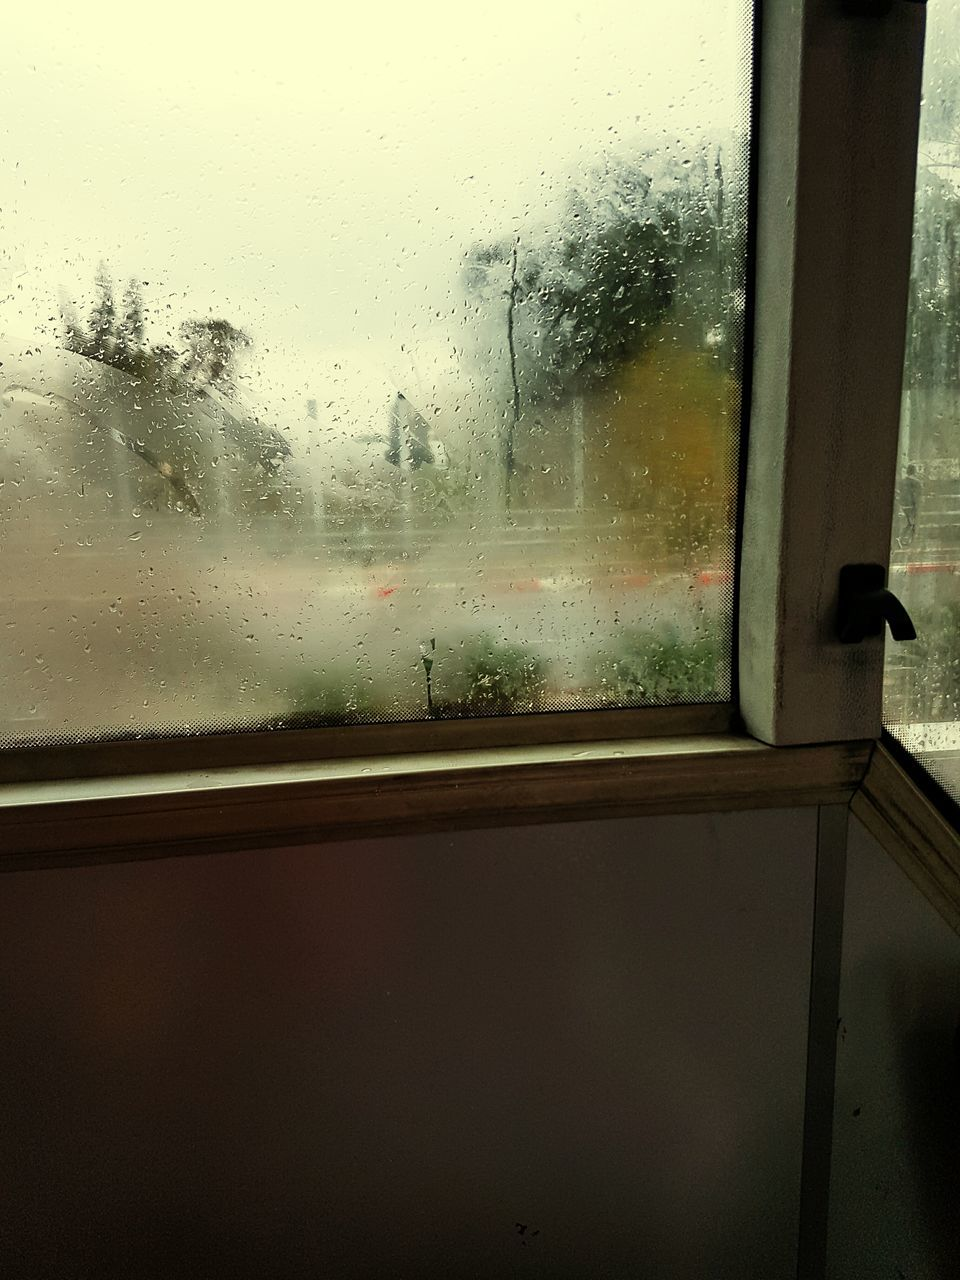 window, glass - material, transparent, wet, weather, looking through window, rain, glass, indoors, drop, water, condensation, raindrop, no people, day, close-up, sky, transportation, nature, tree